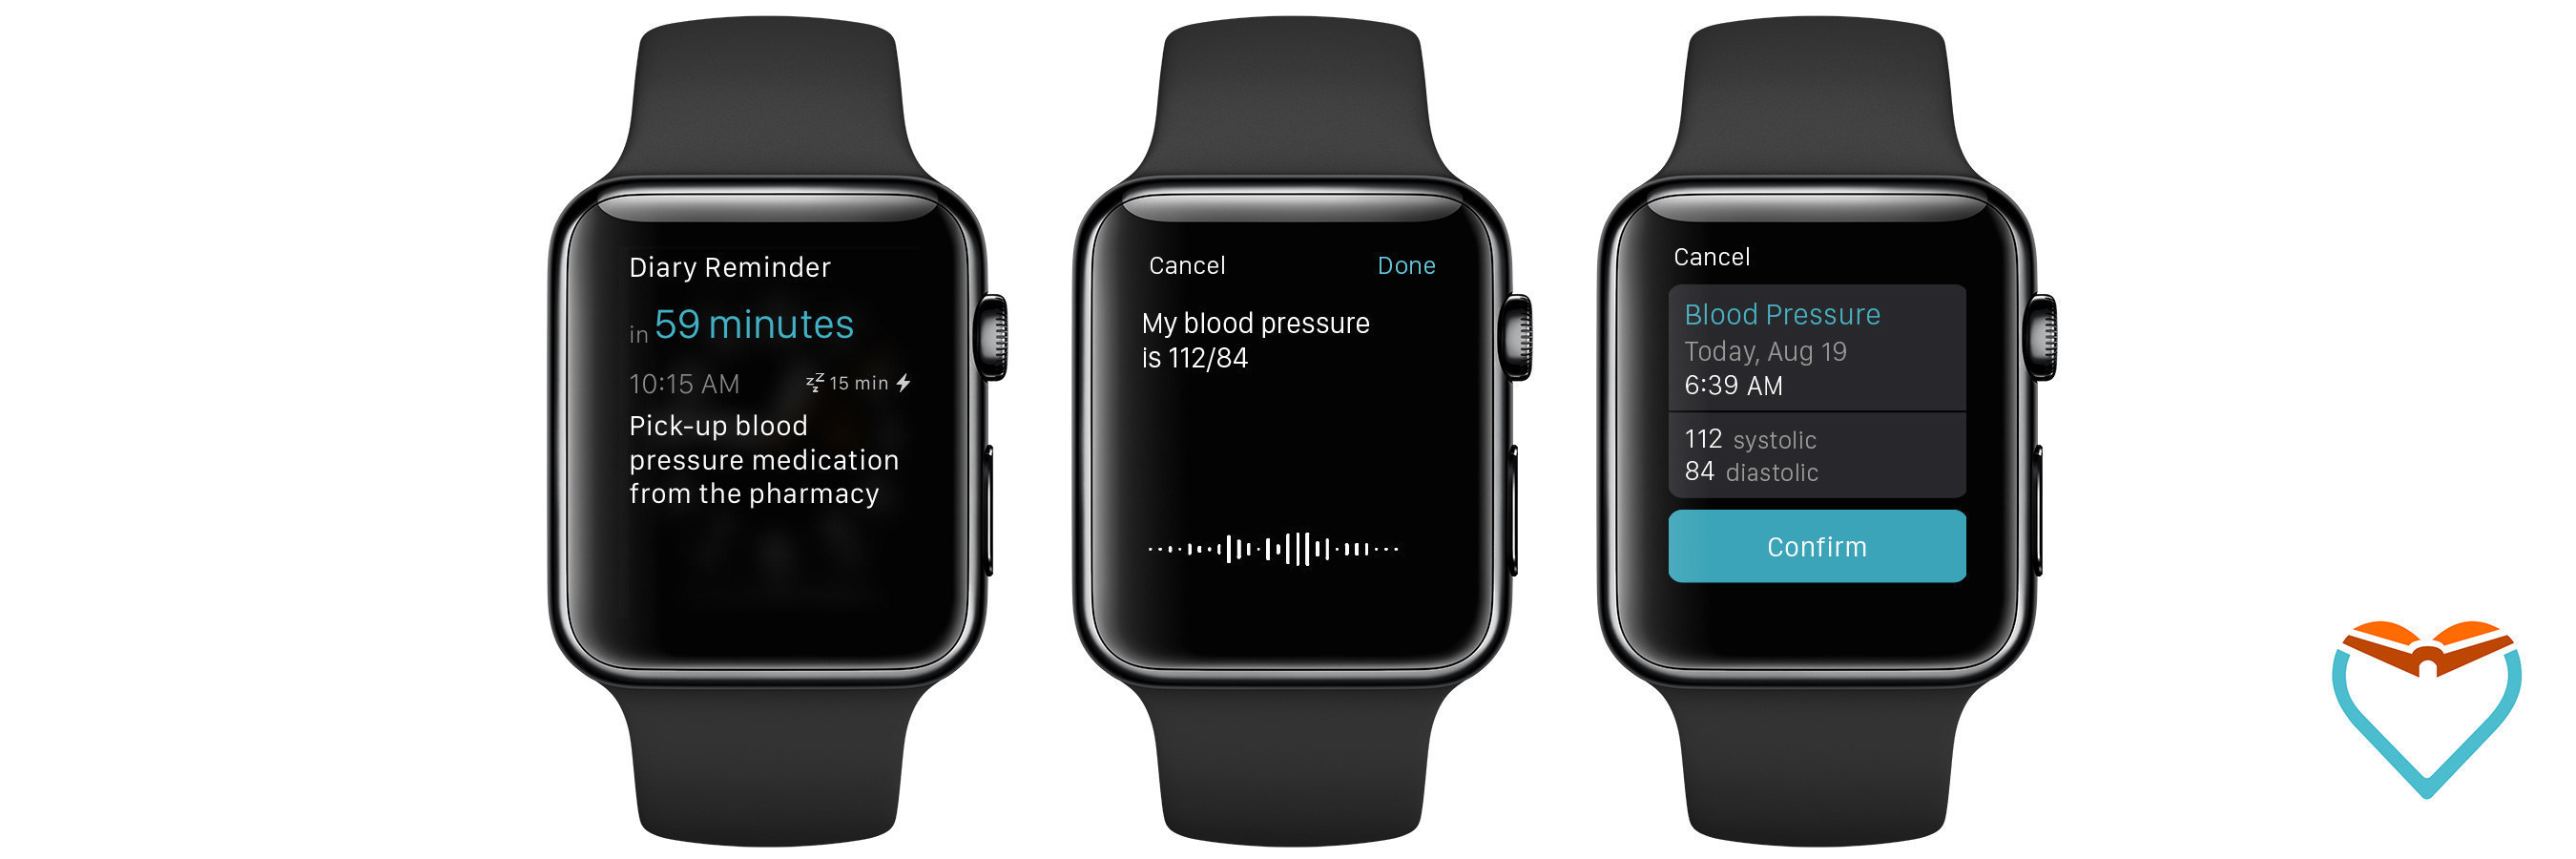 The Diary for Apple Watch Improves Health Outcomes with Care Management Features